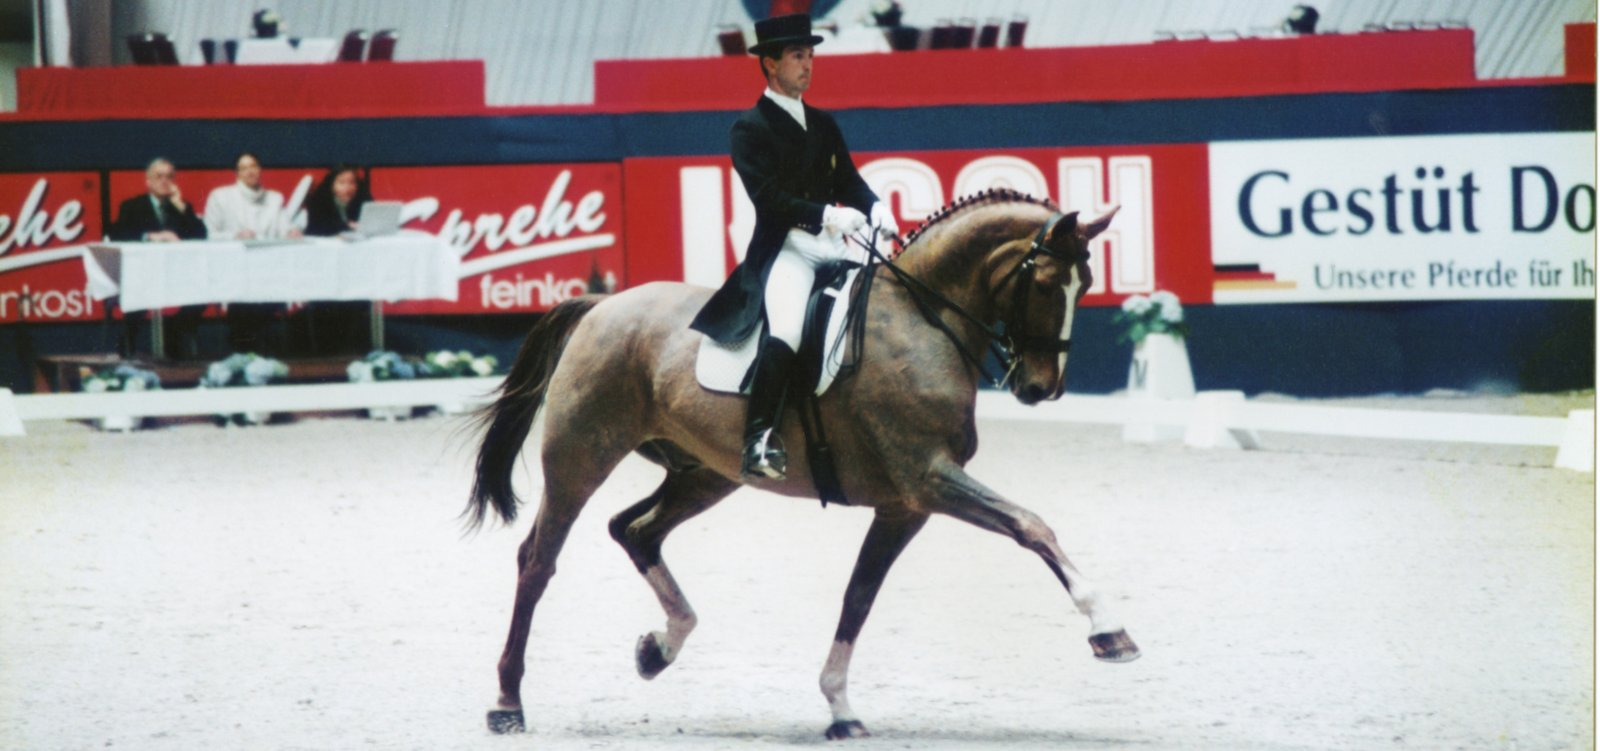 carlos pinto cavalier international de dressage